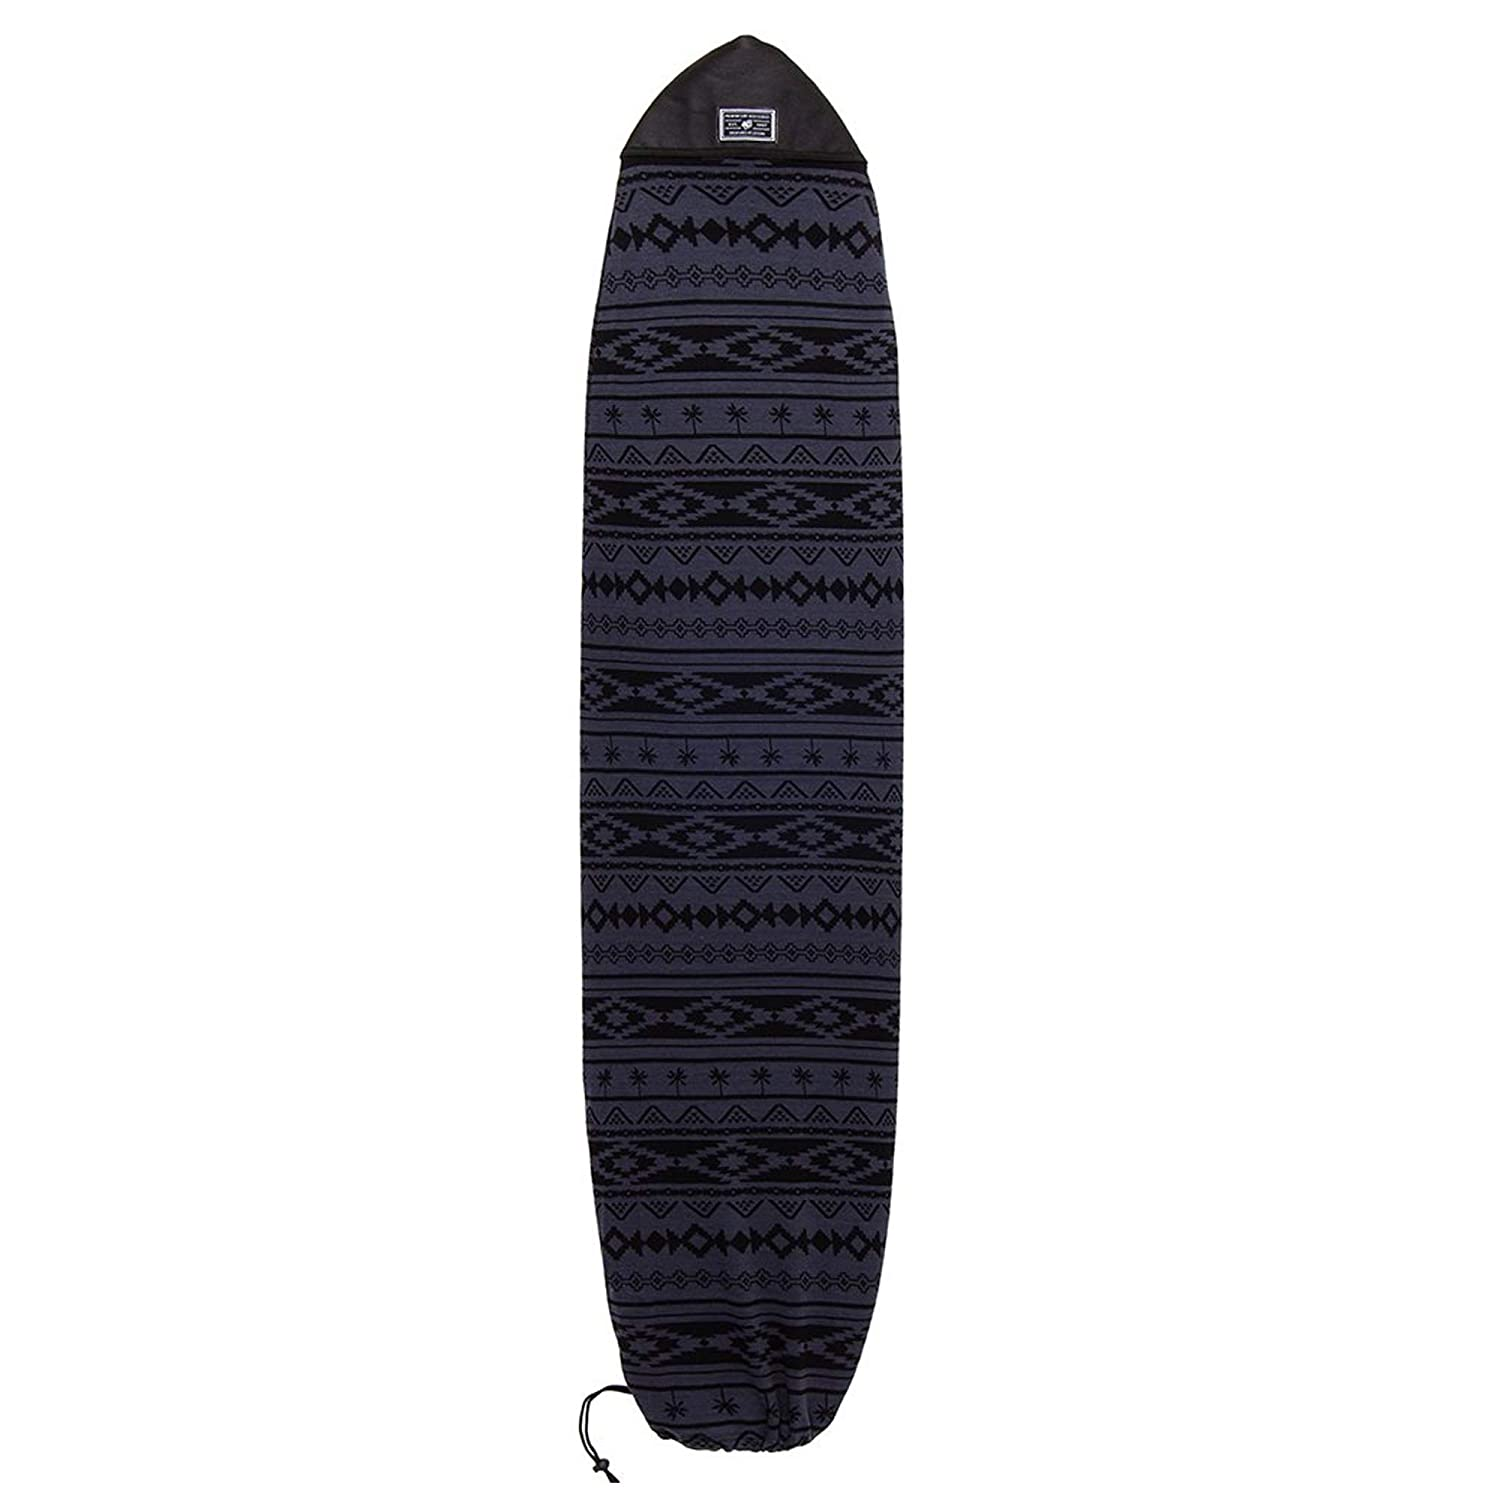 Creatures of Leisure Navajo Longboard Sox 9ft チャコール/ブラック B07B5X7ZM5